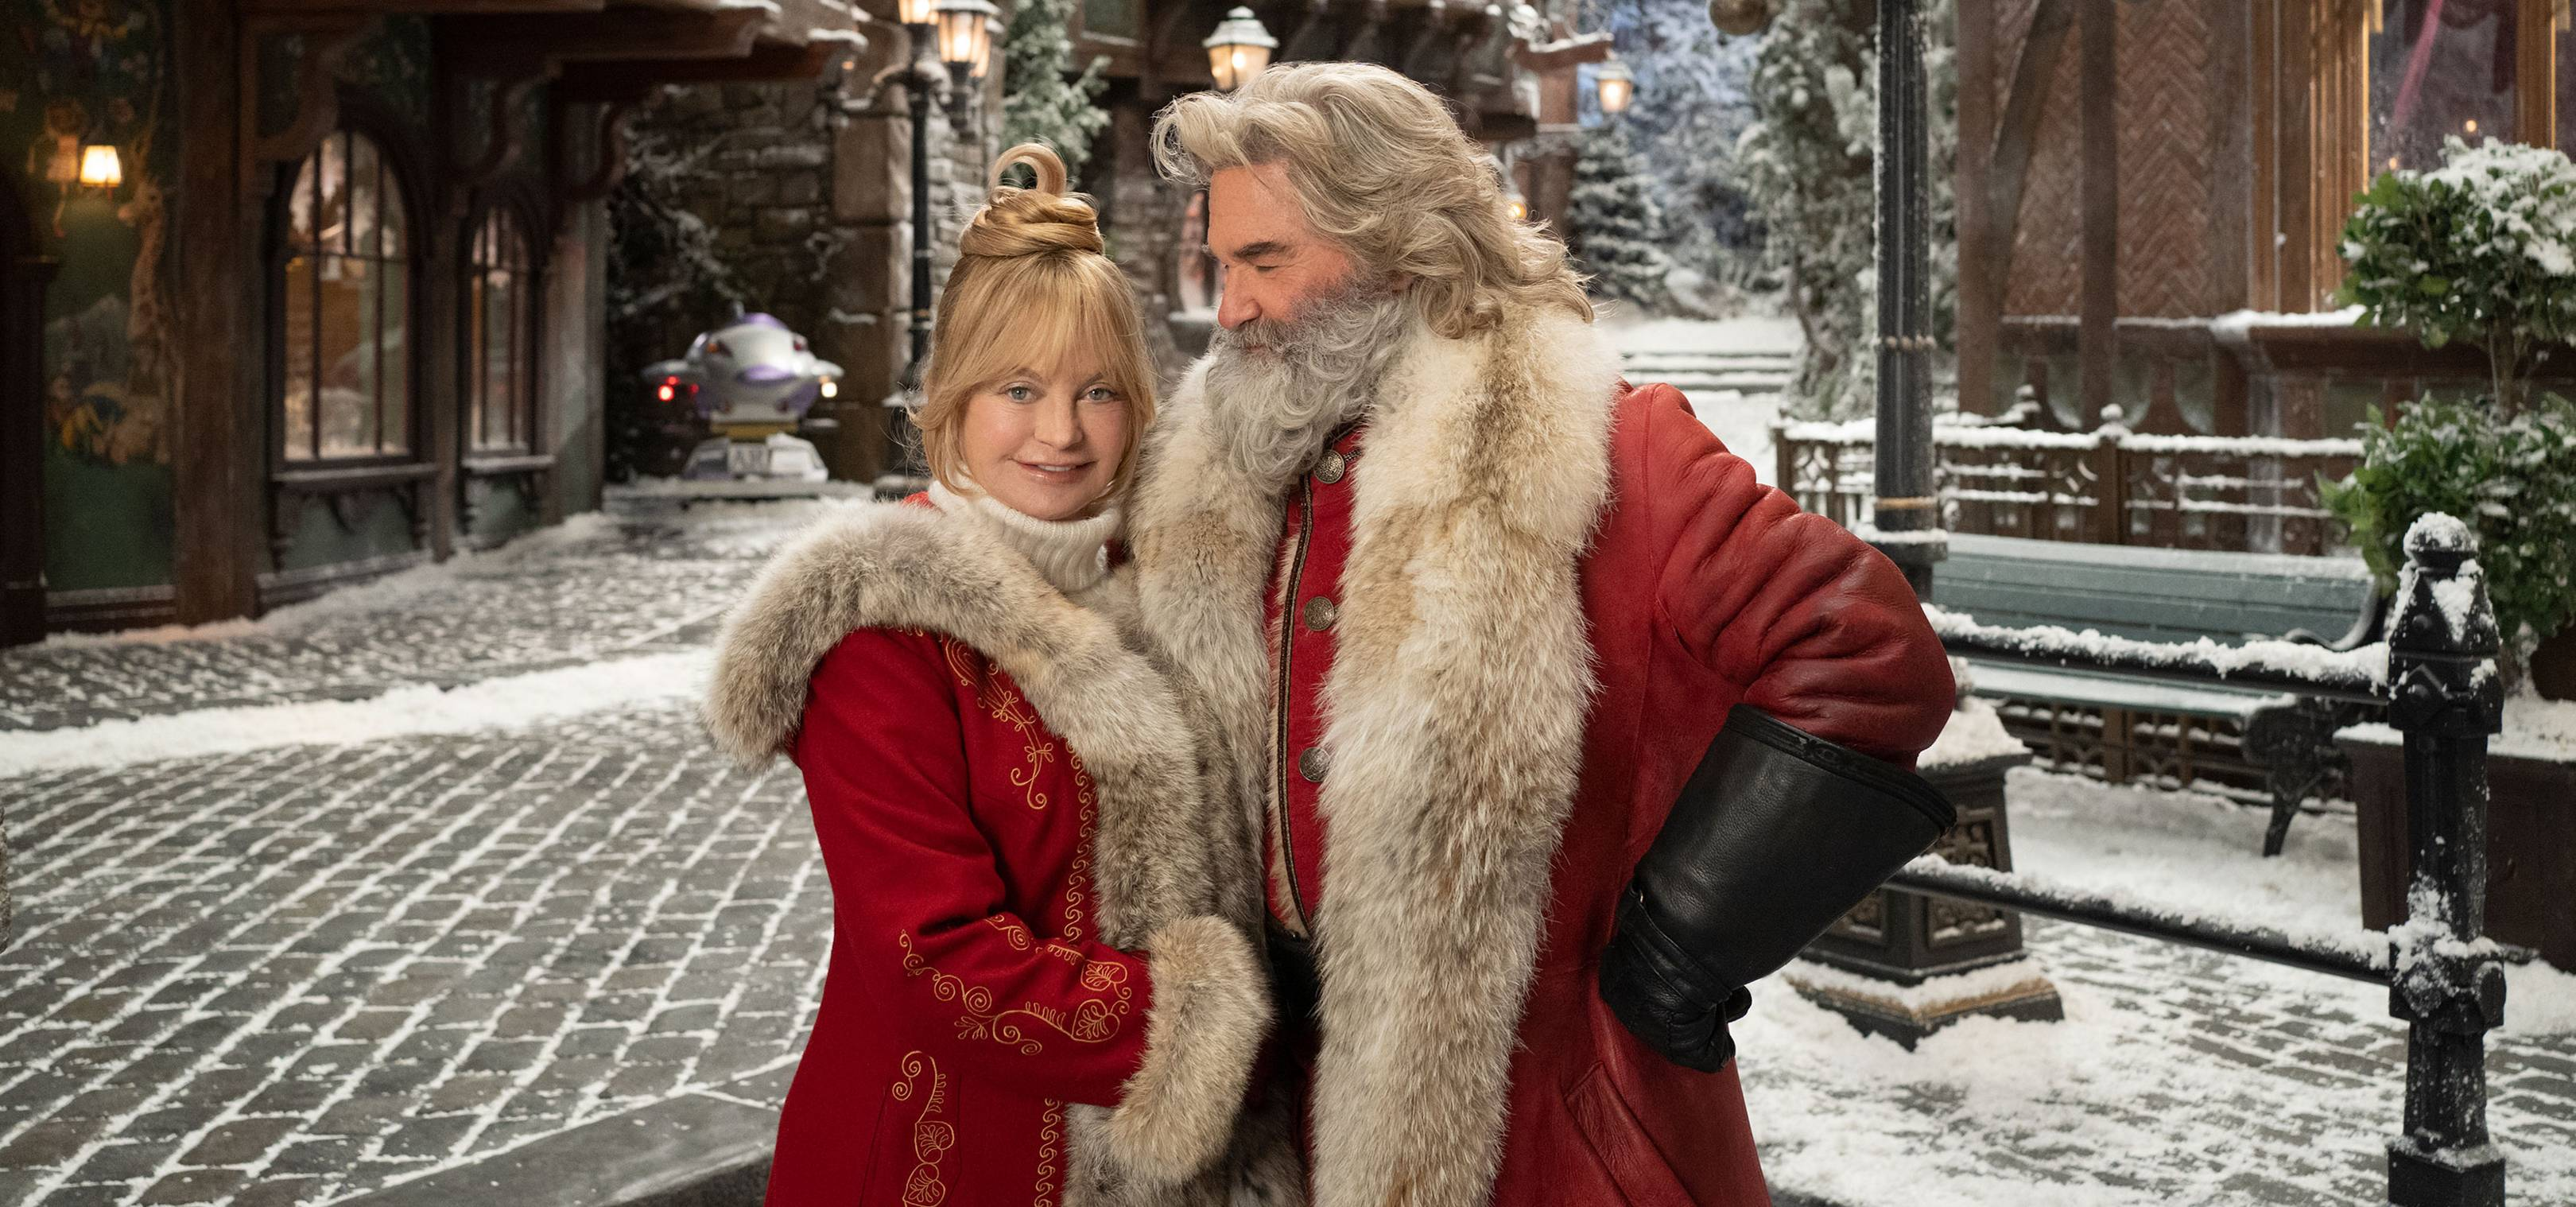 Netflix's original Christmas movies are some of the best-ever festive flicks –here are the ones to watch this winter